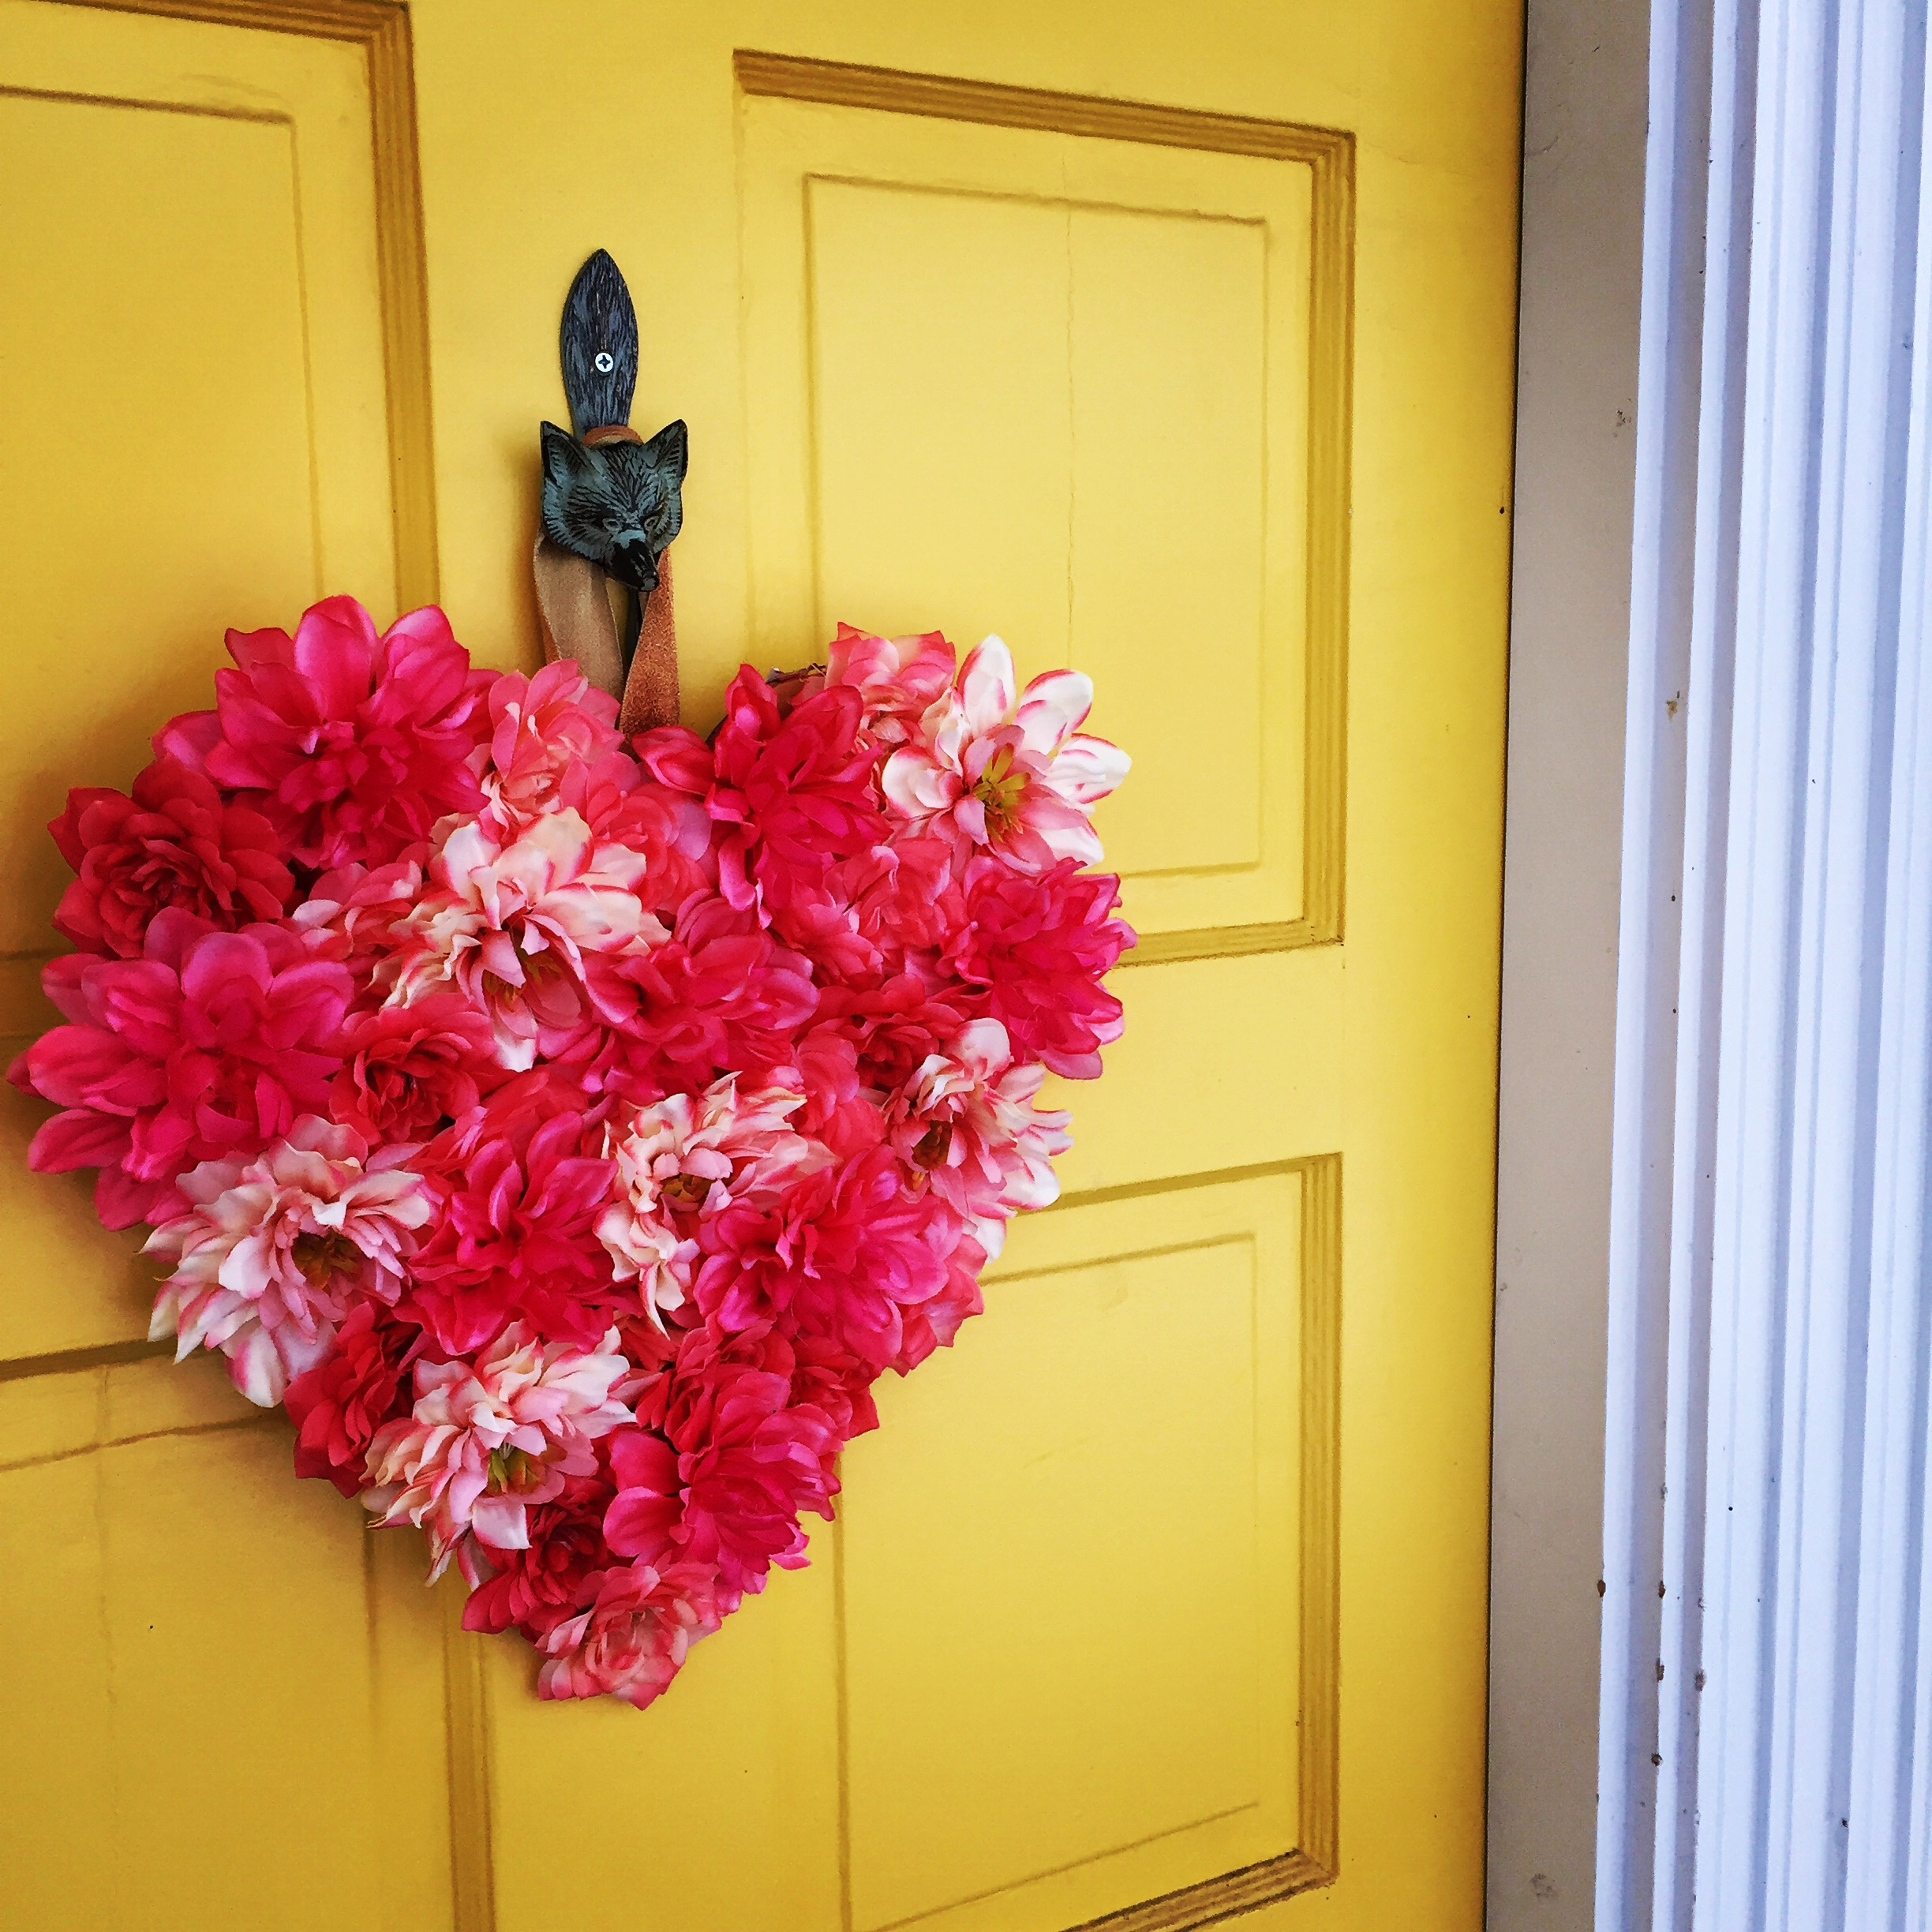 Diy A Target Style Valentine Door Hanger For Cheap Julia Omalley